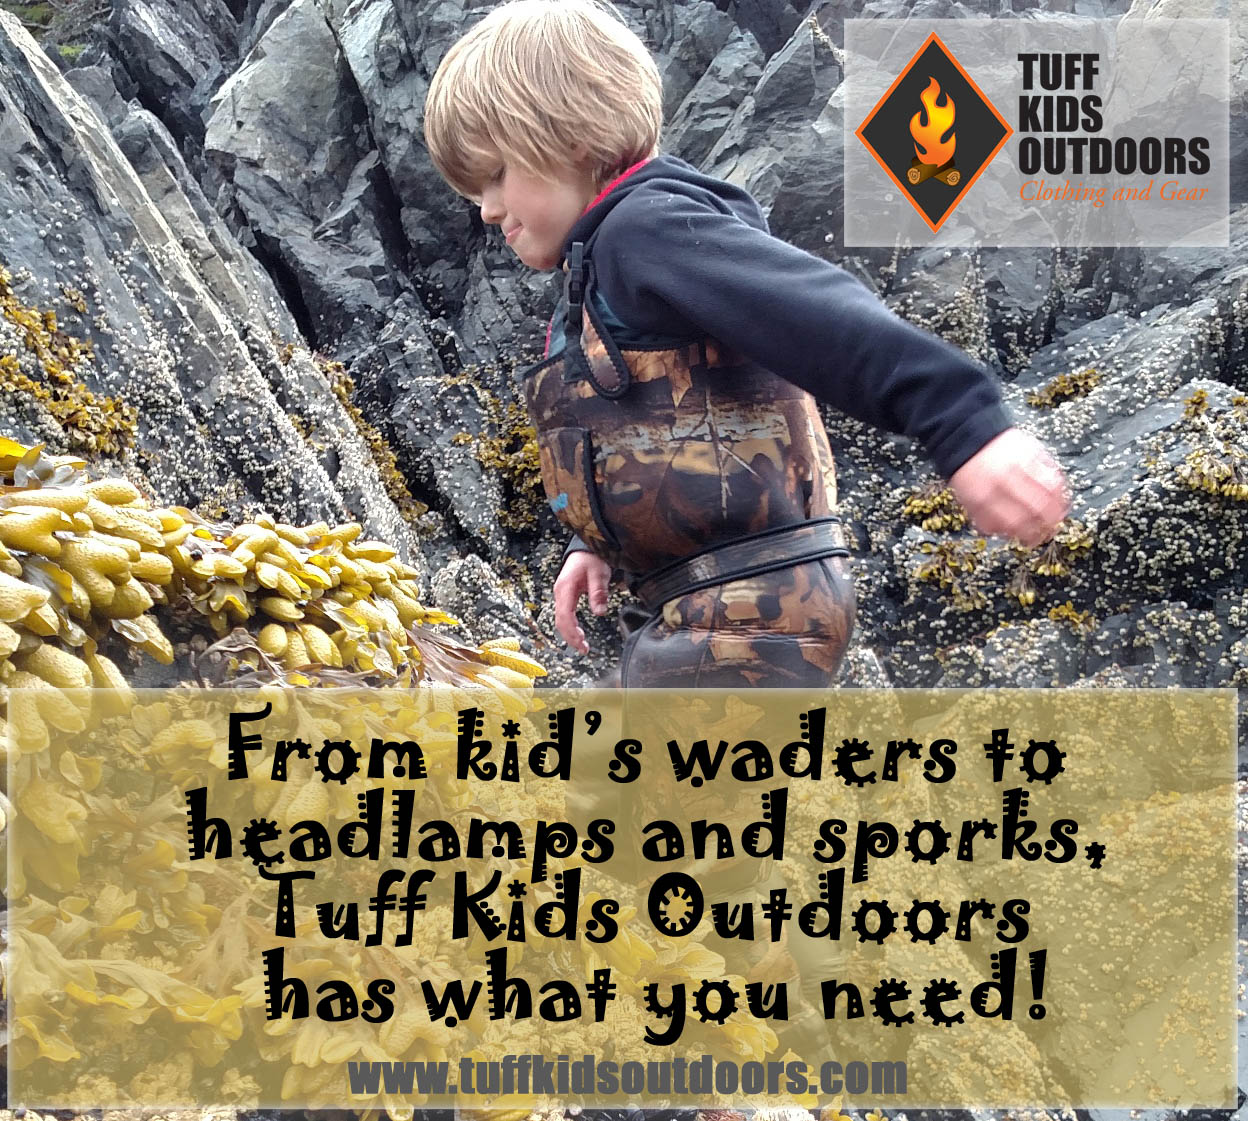 Tuff Kids Outdoors Clearance Sales